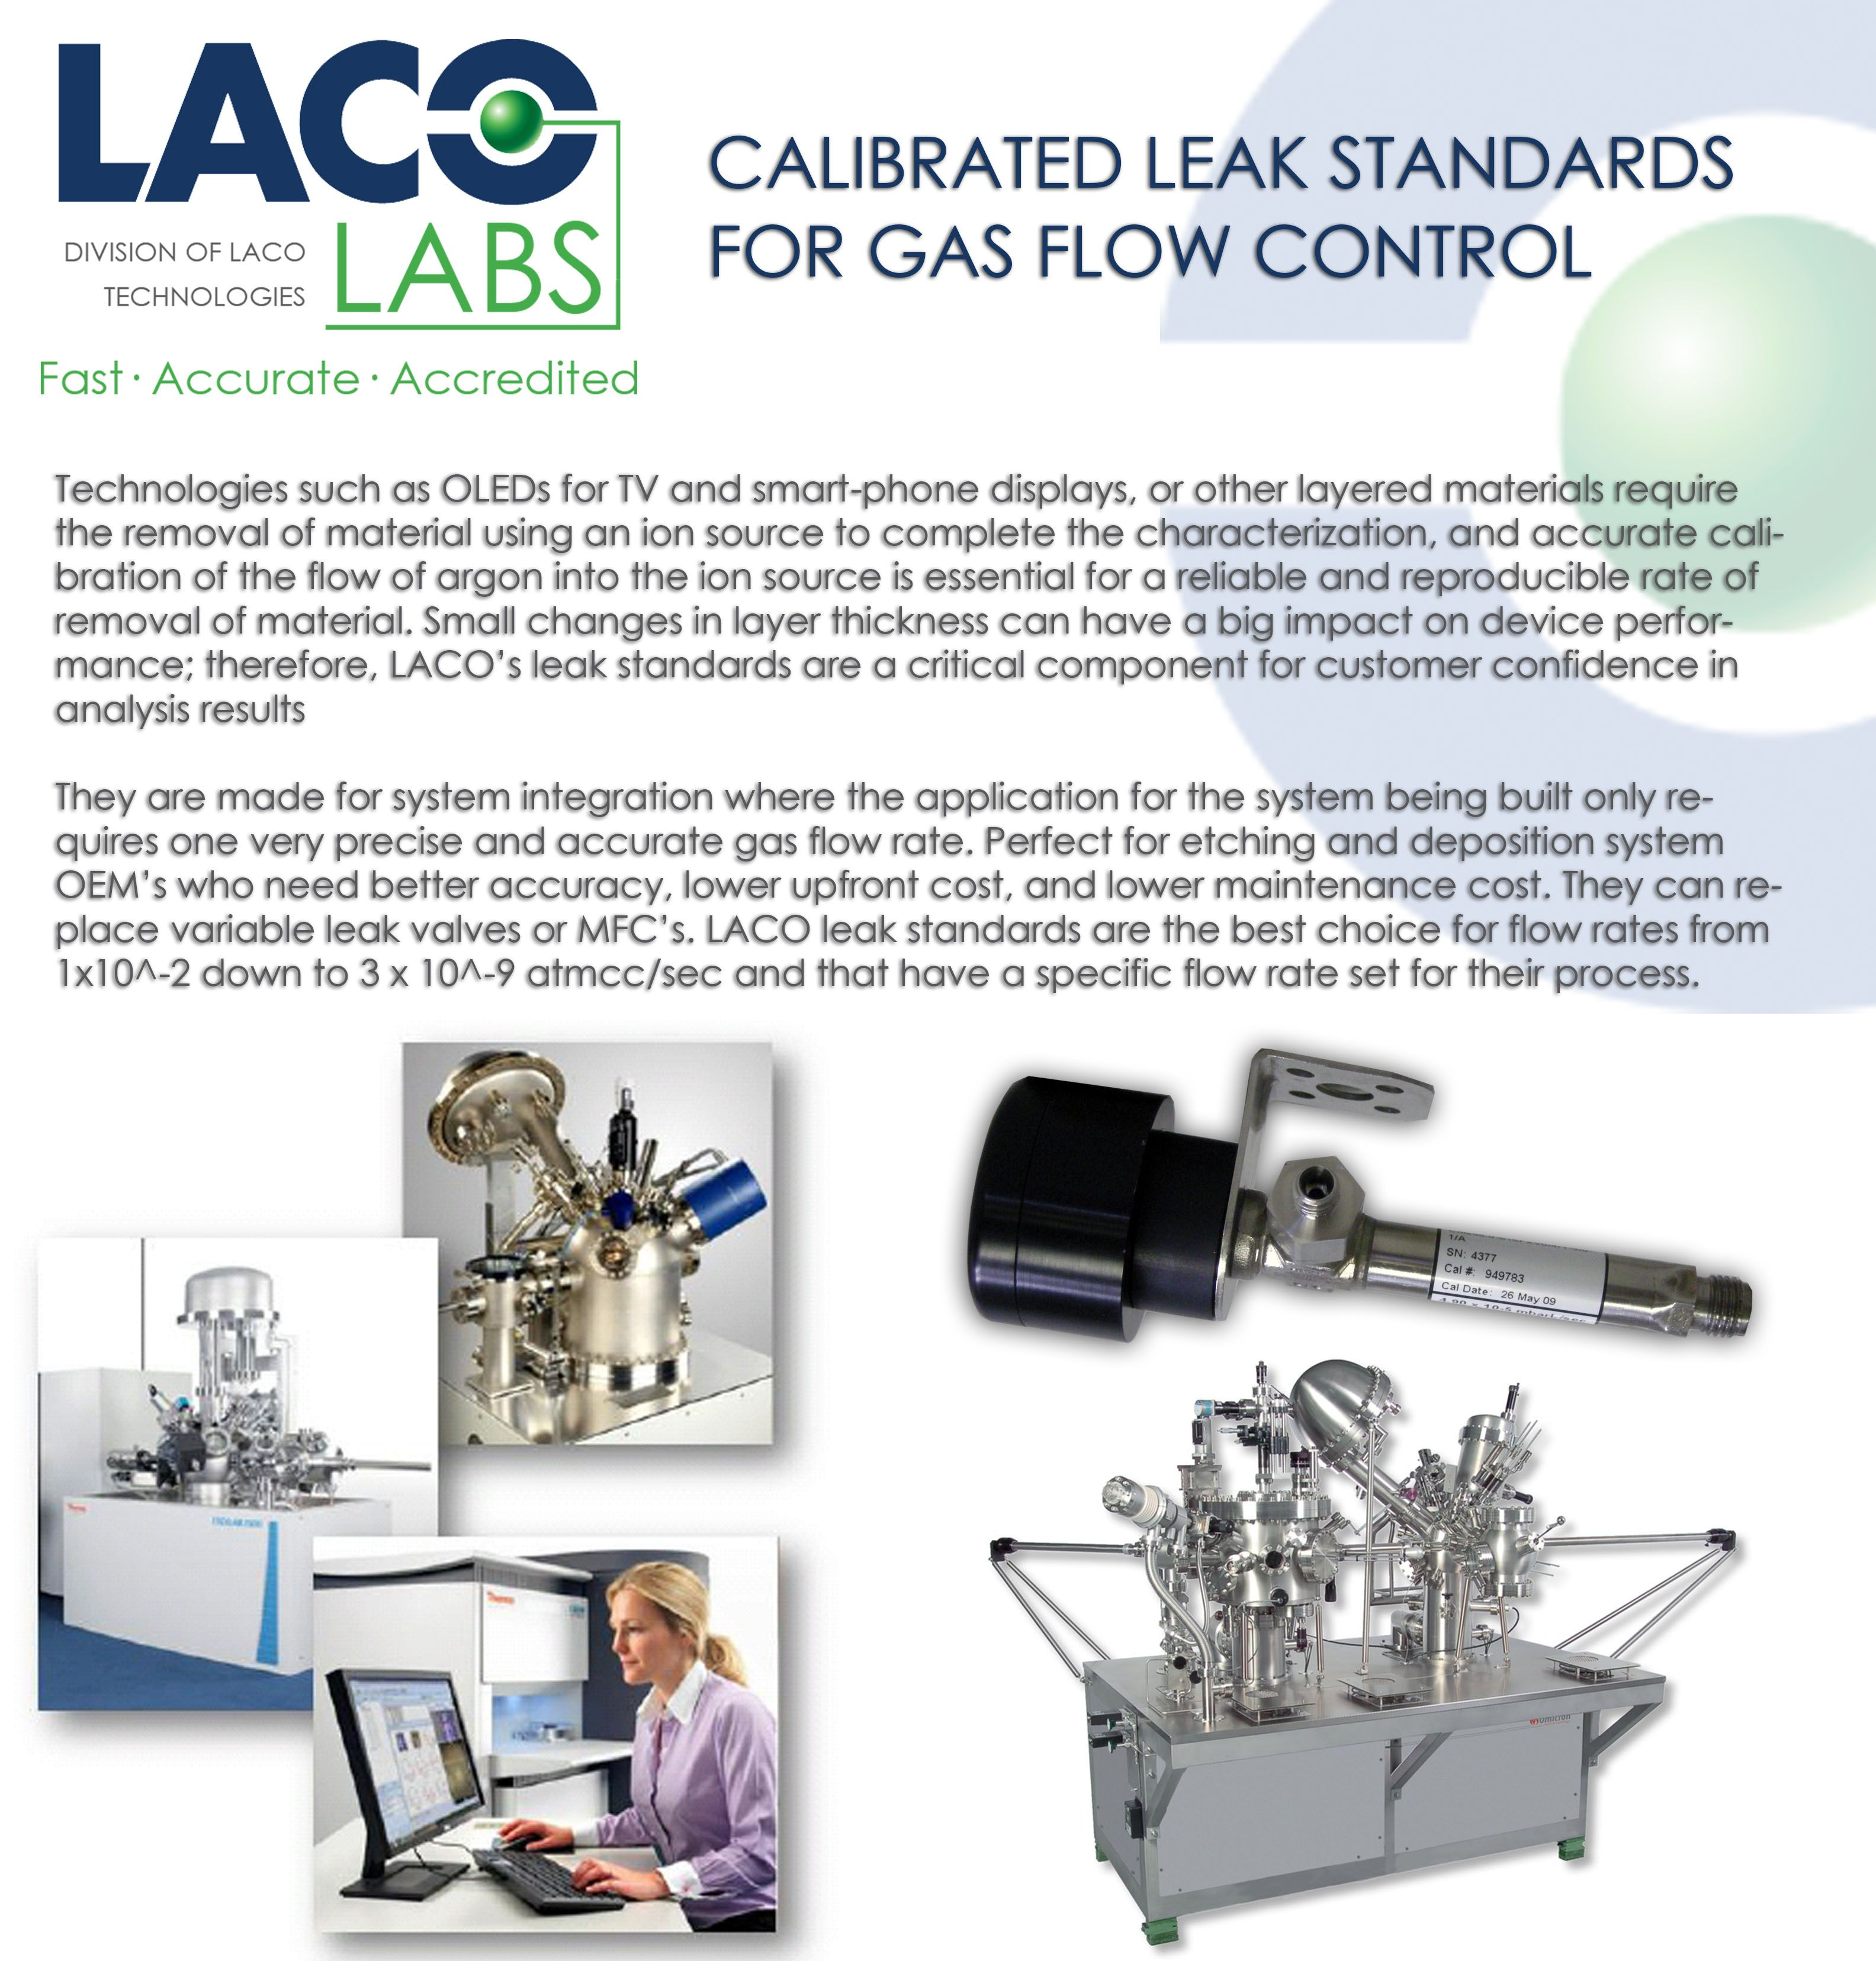 Leak standards for gas flow control integrated into xps